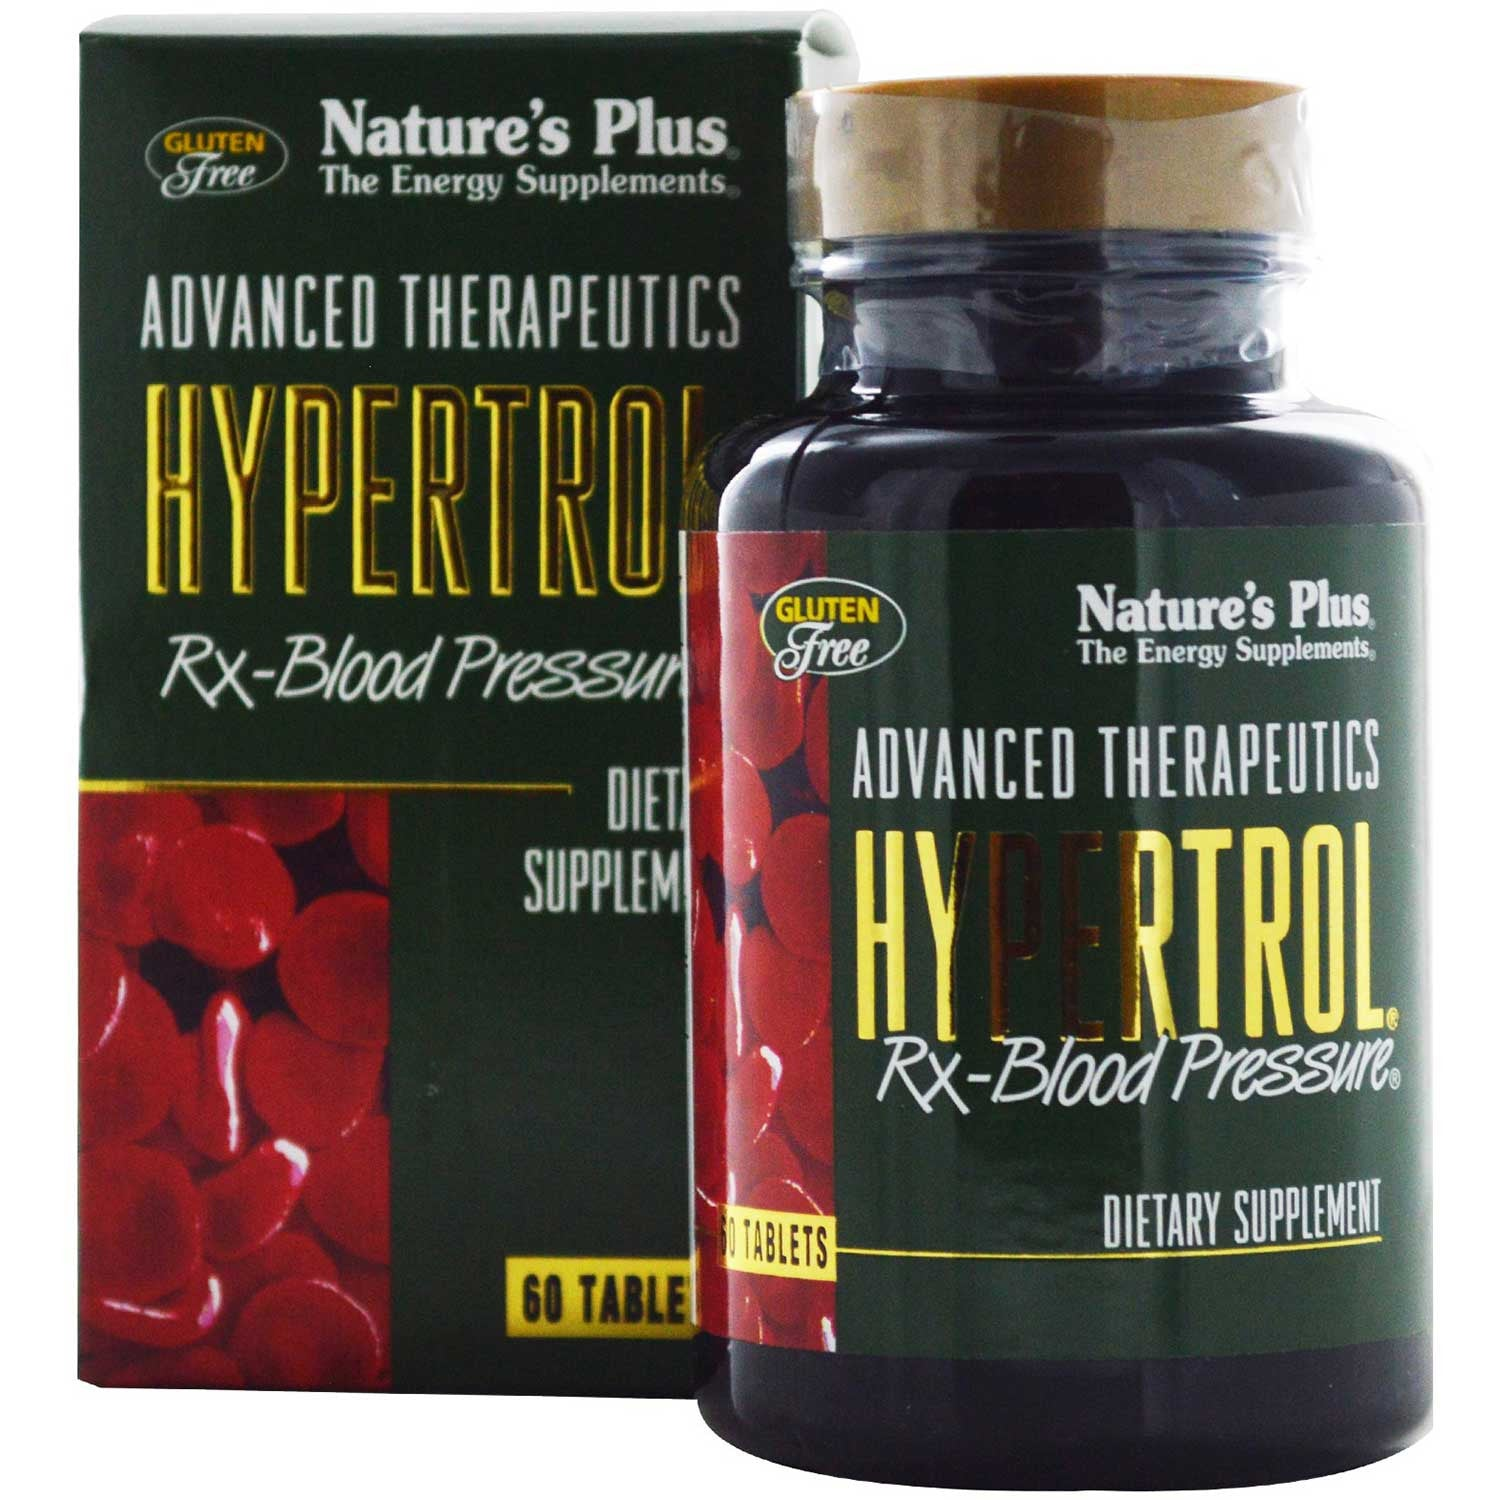 Natures Plus Hypertrol Rx-Blood Pressure, 60 tabs.-NaturesWisdom